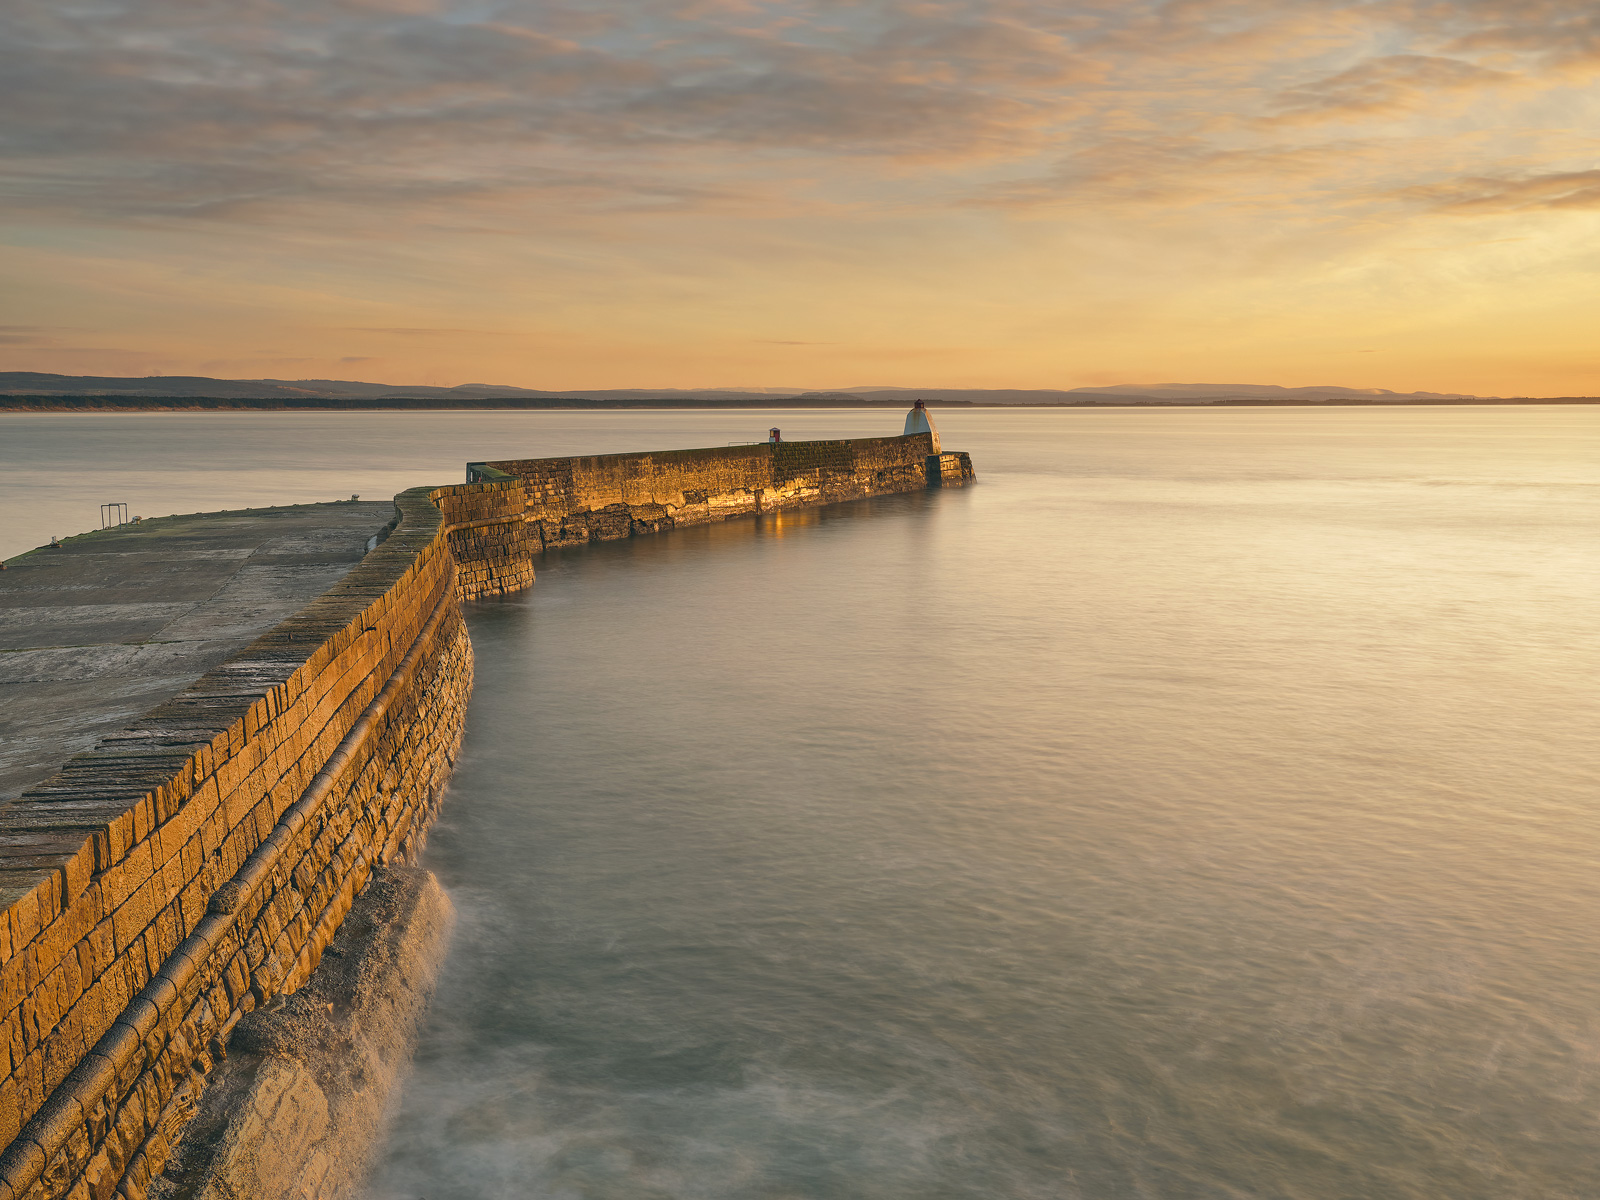 Golden sunlight strikes the sinuous line of the old stone harbour wall turning it a rich burnished gold.  The smooth sea had...